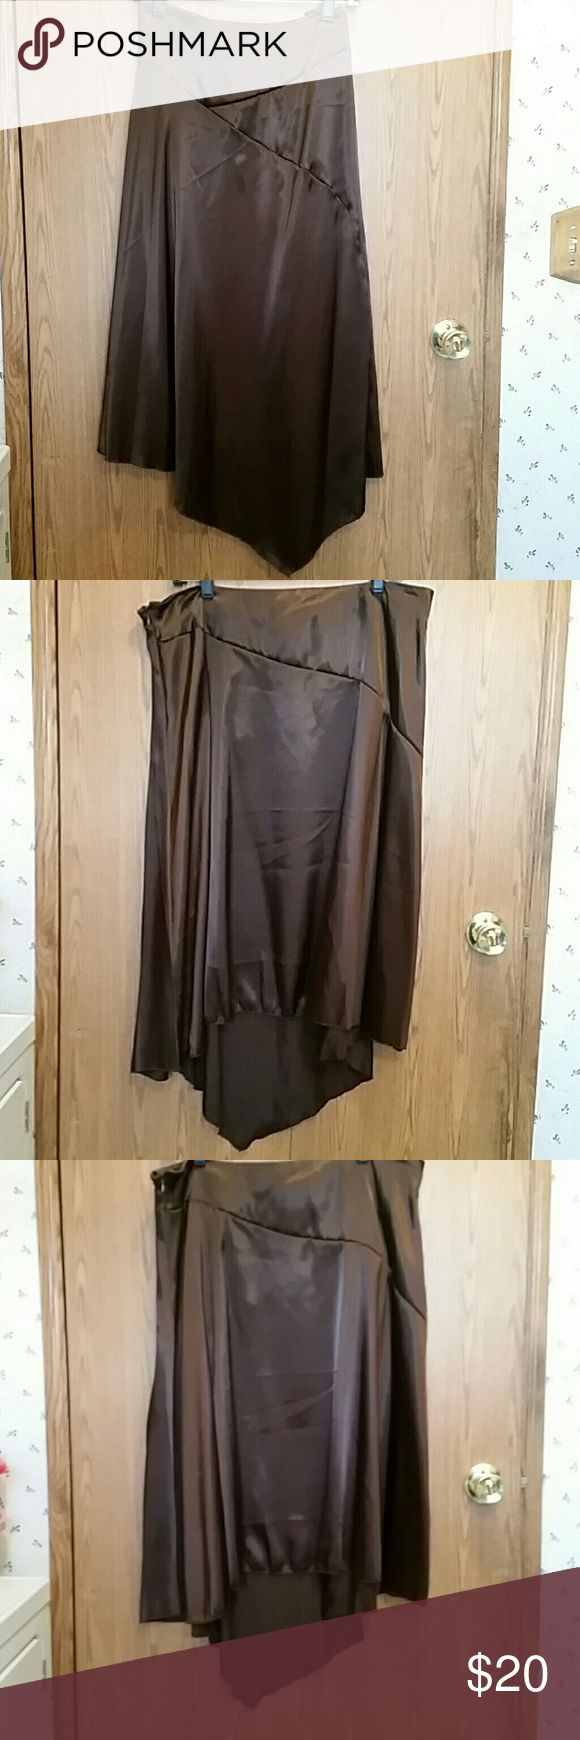 Ashley Stewart Skirt sz 16  NWOT Beautiful chocolate brown skirt feels like silk! Angle hem. New Without Tags. Sz 16. Measures approximately 36 inches at the waist. Angle hem line is 35 inches long. Other side is 26 1/2 inches long. Ashley Stewart Skirts